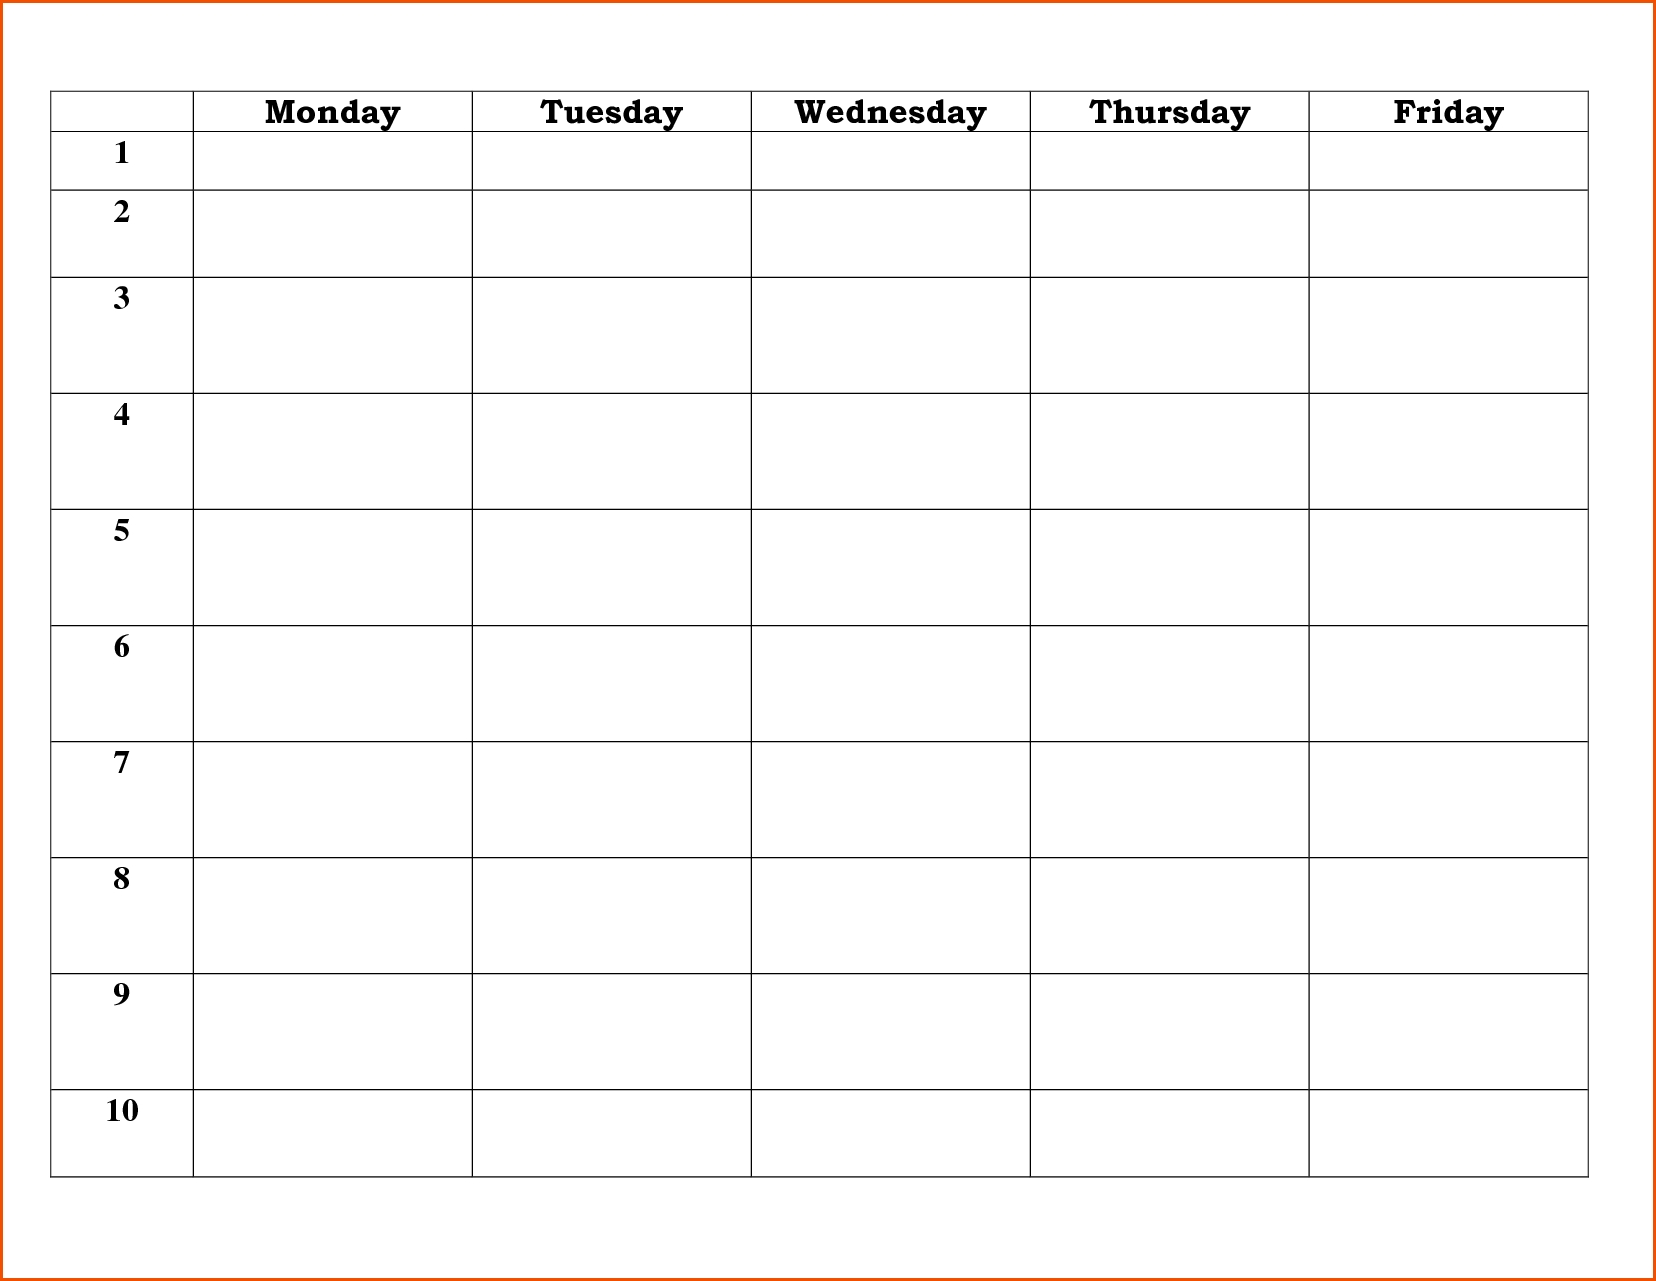 Day Schedule Template.23408790Memo Templates Word | Memo with regard to 5 Day Weekly Schedule Template